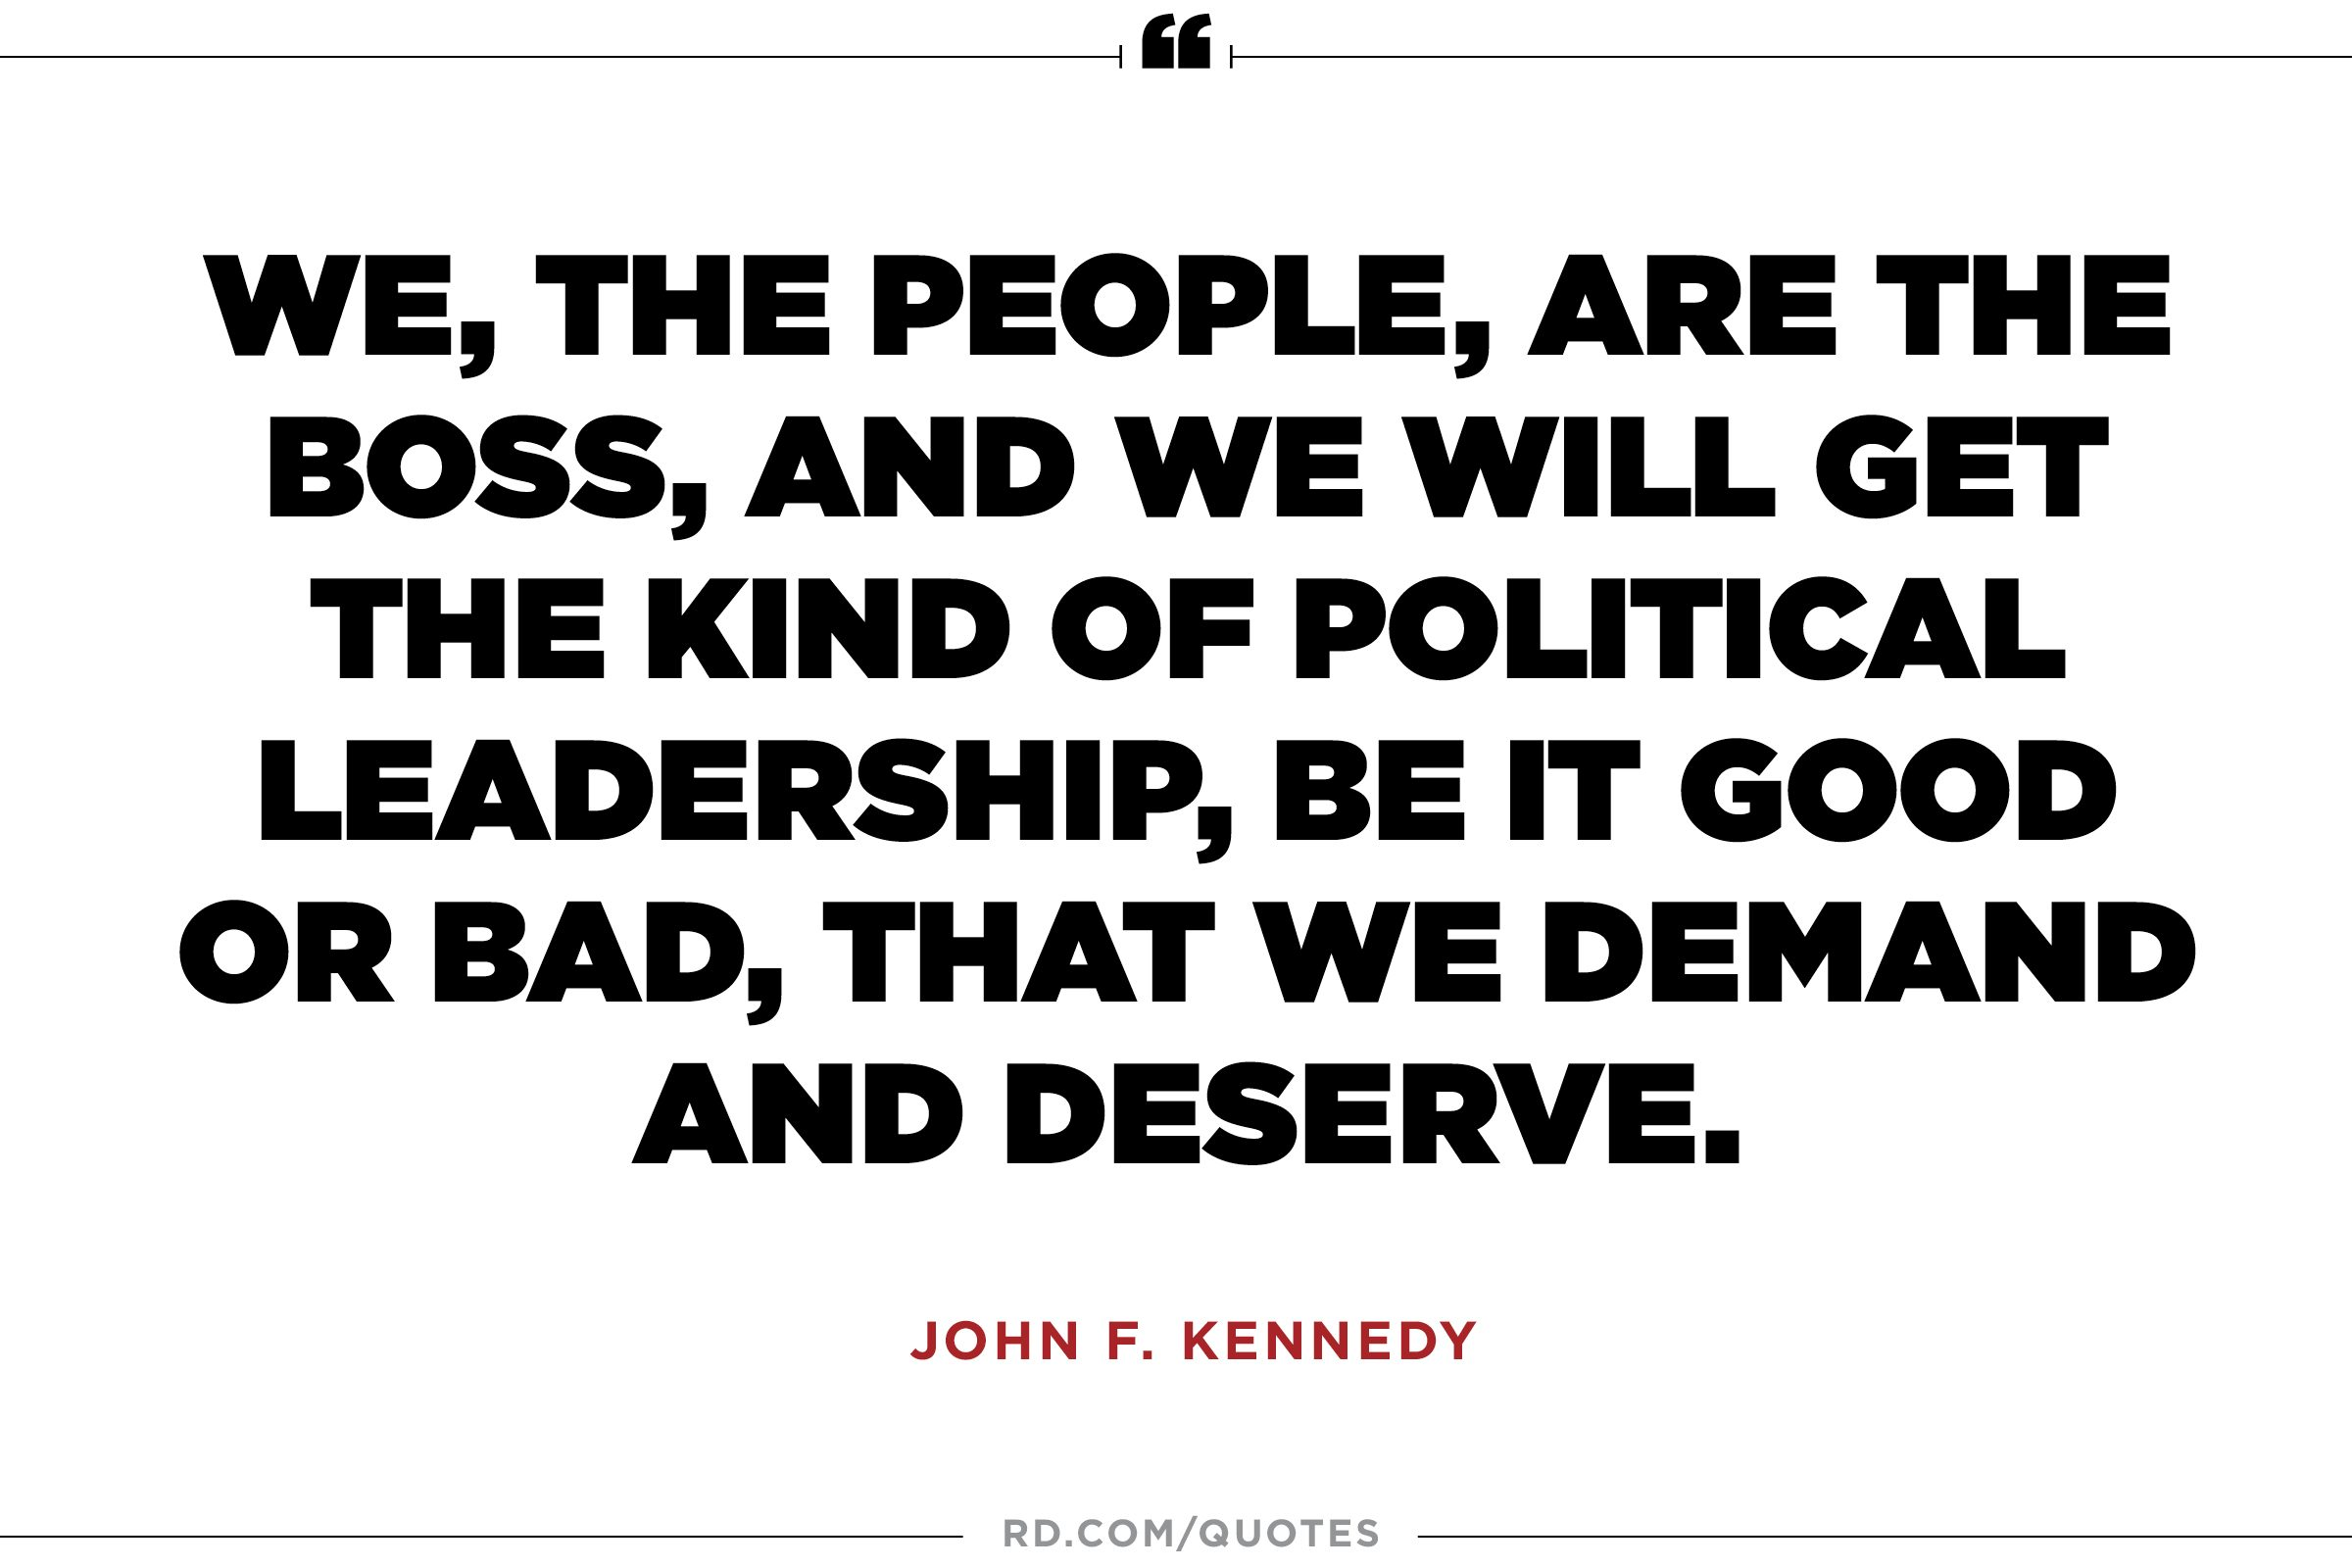 JFK on democracy